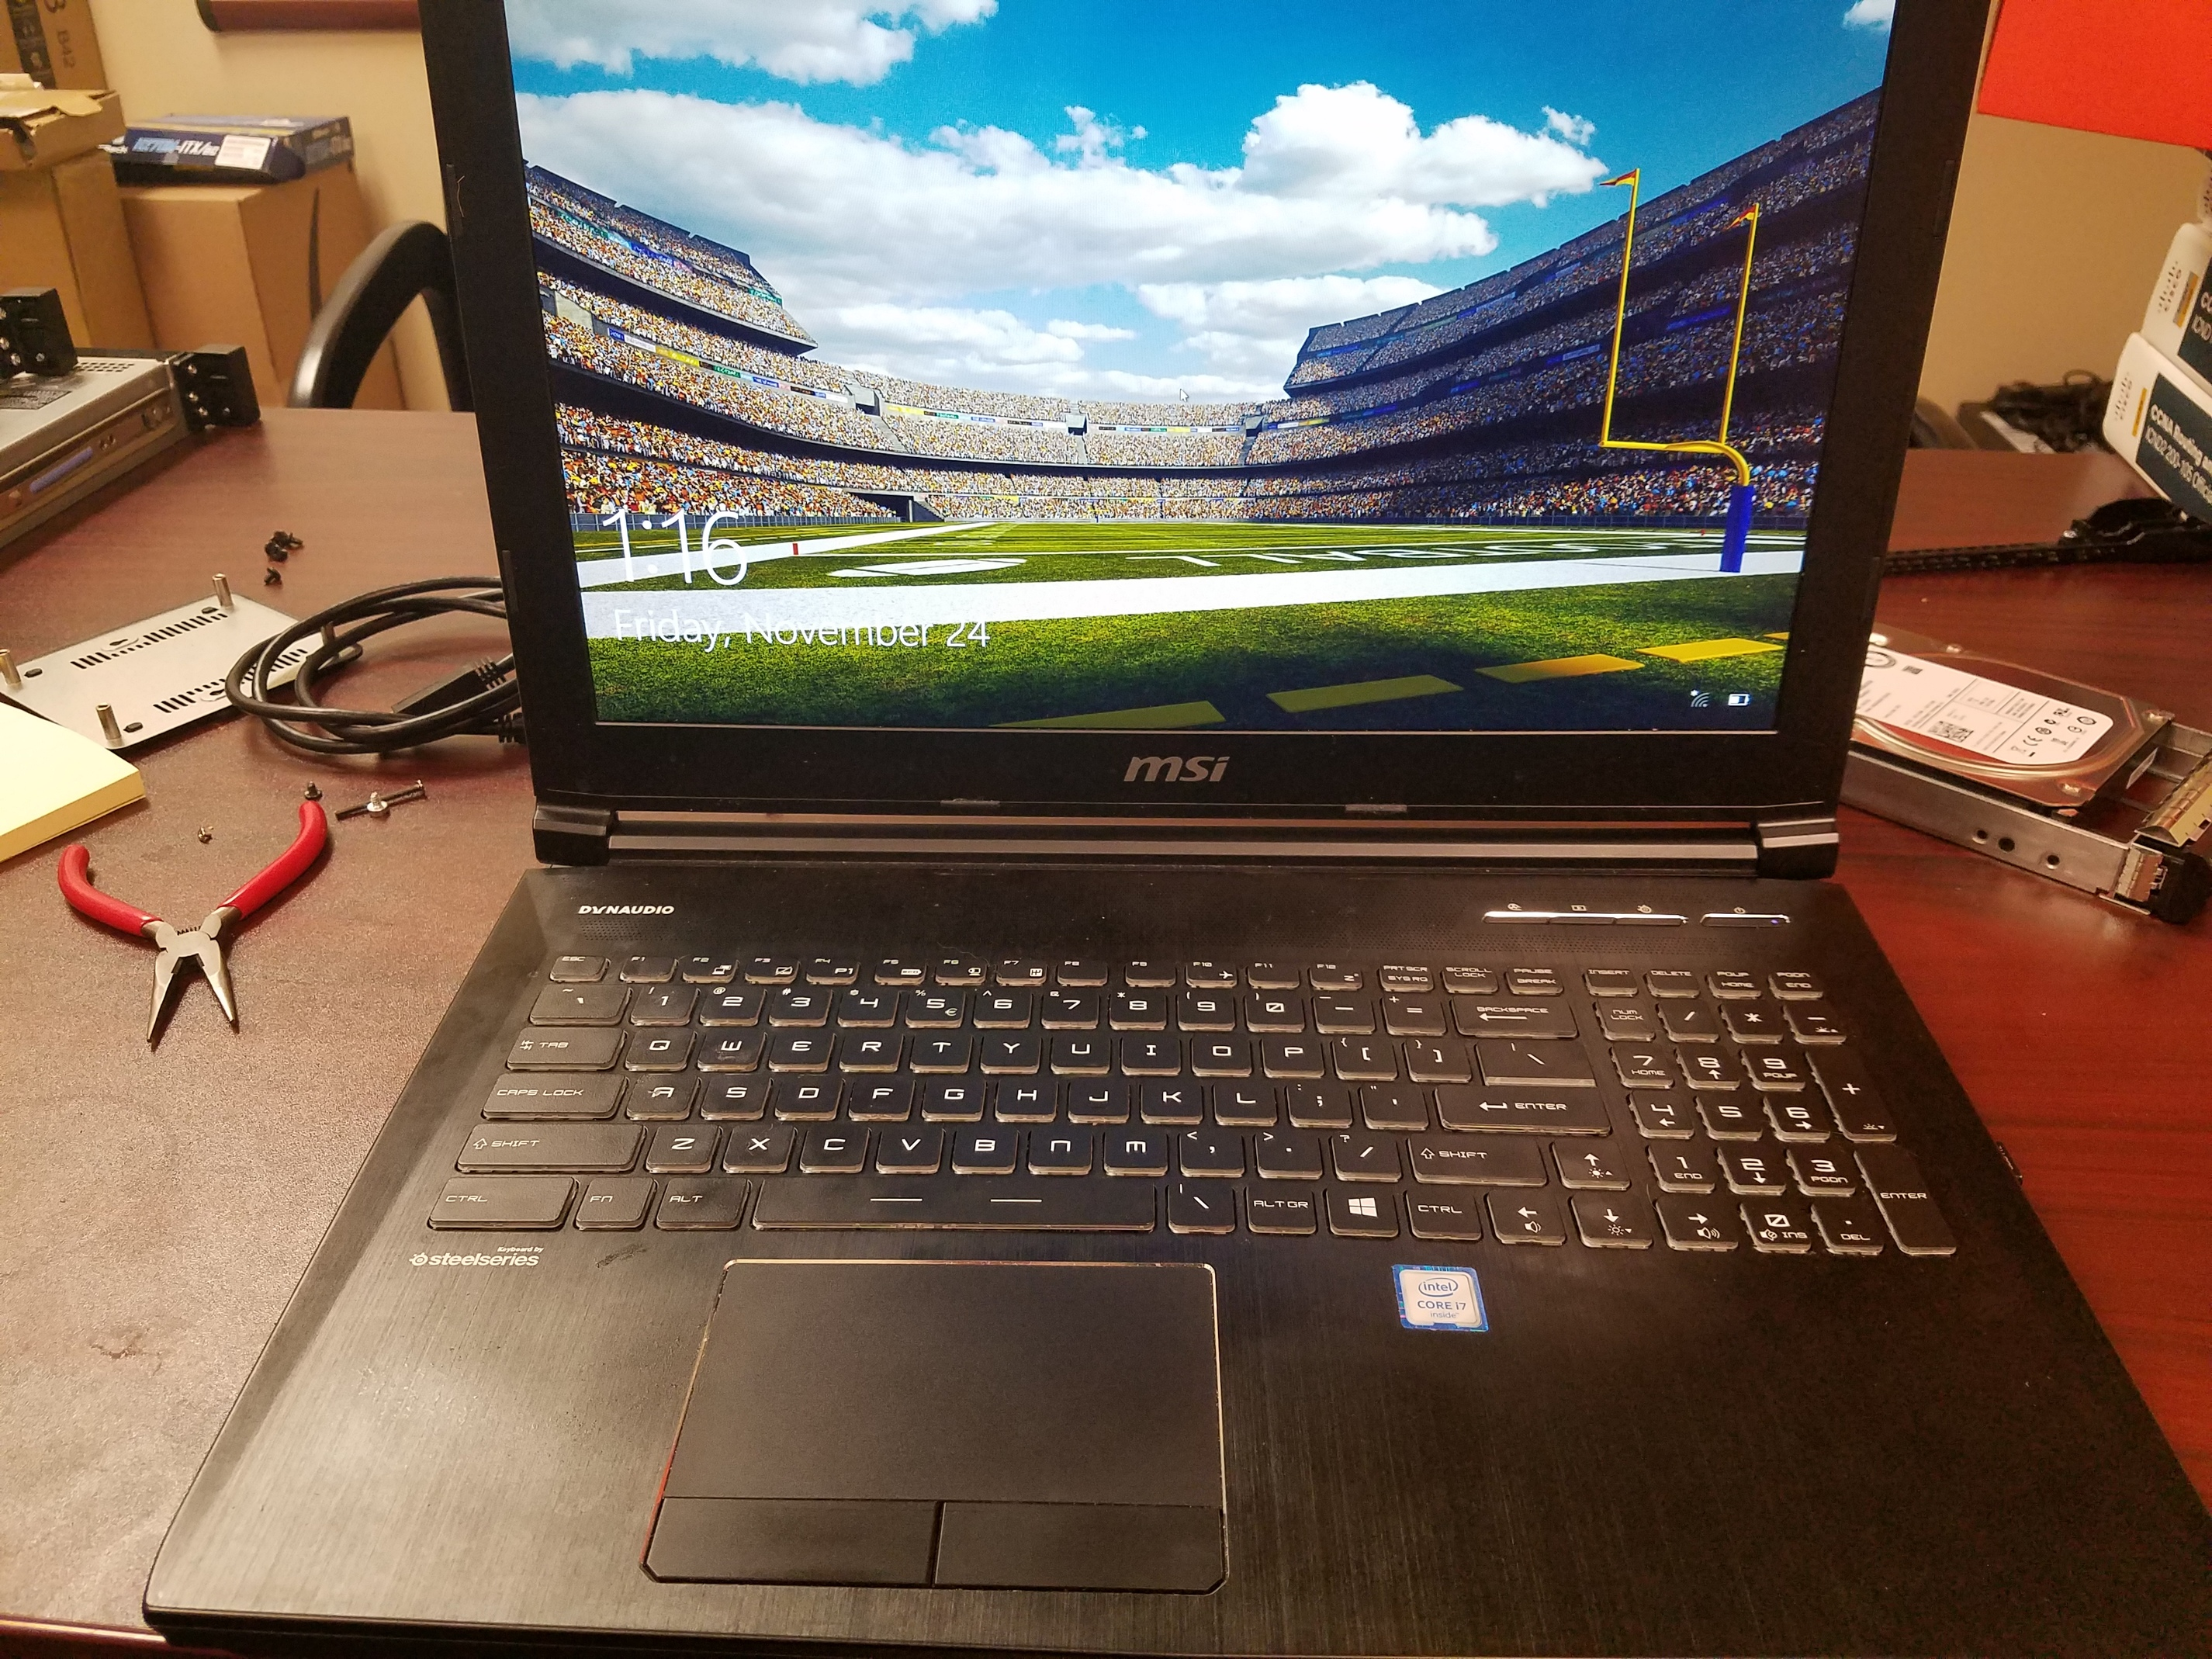 WTS][US]MSI GT62VR w/gtx 1070 + upgrades - $1350 - Buy/Sell